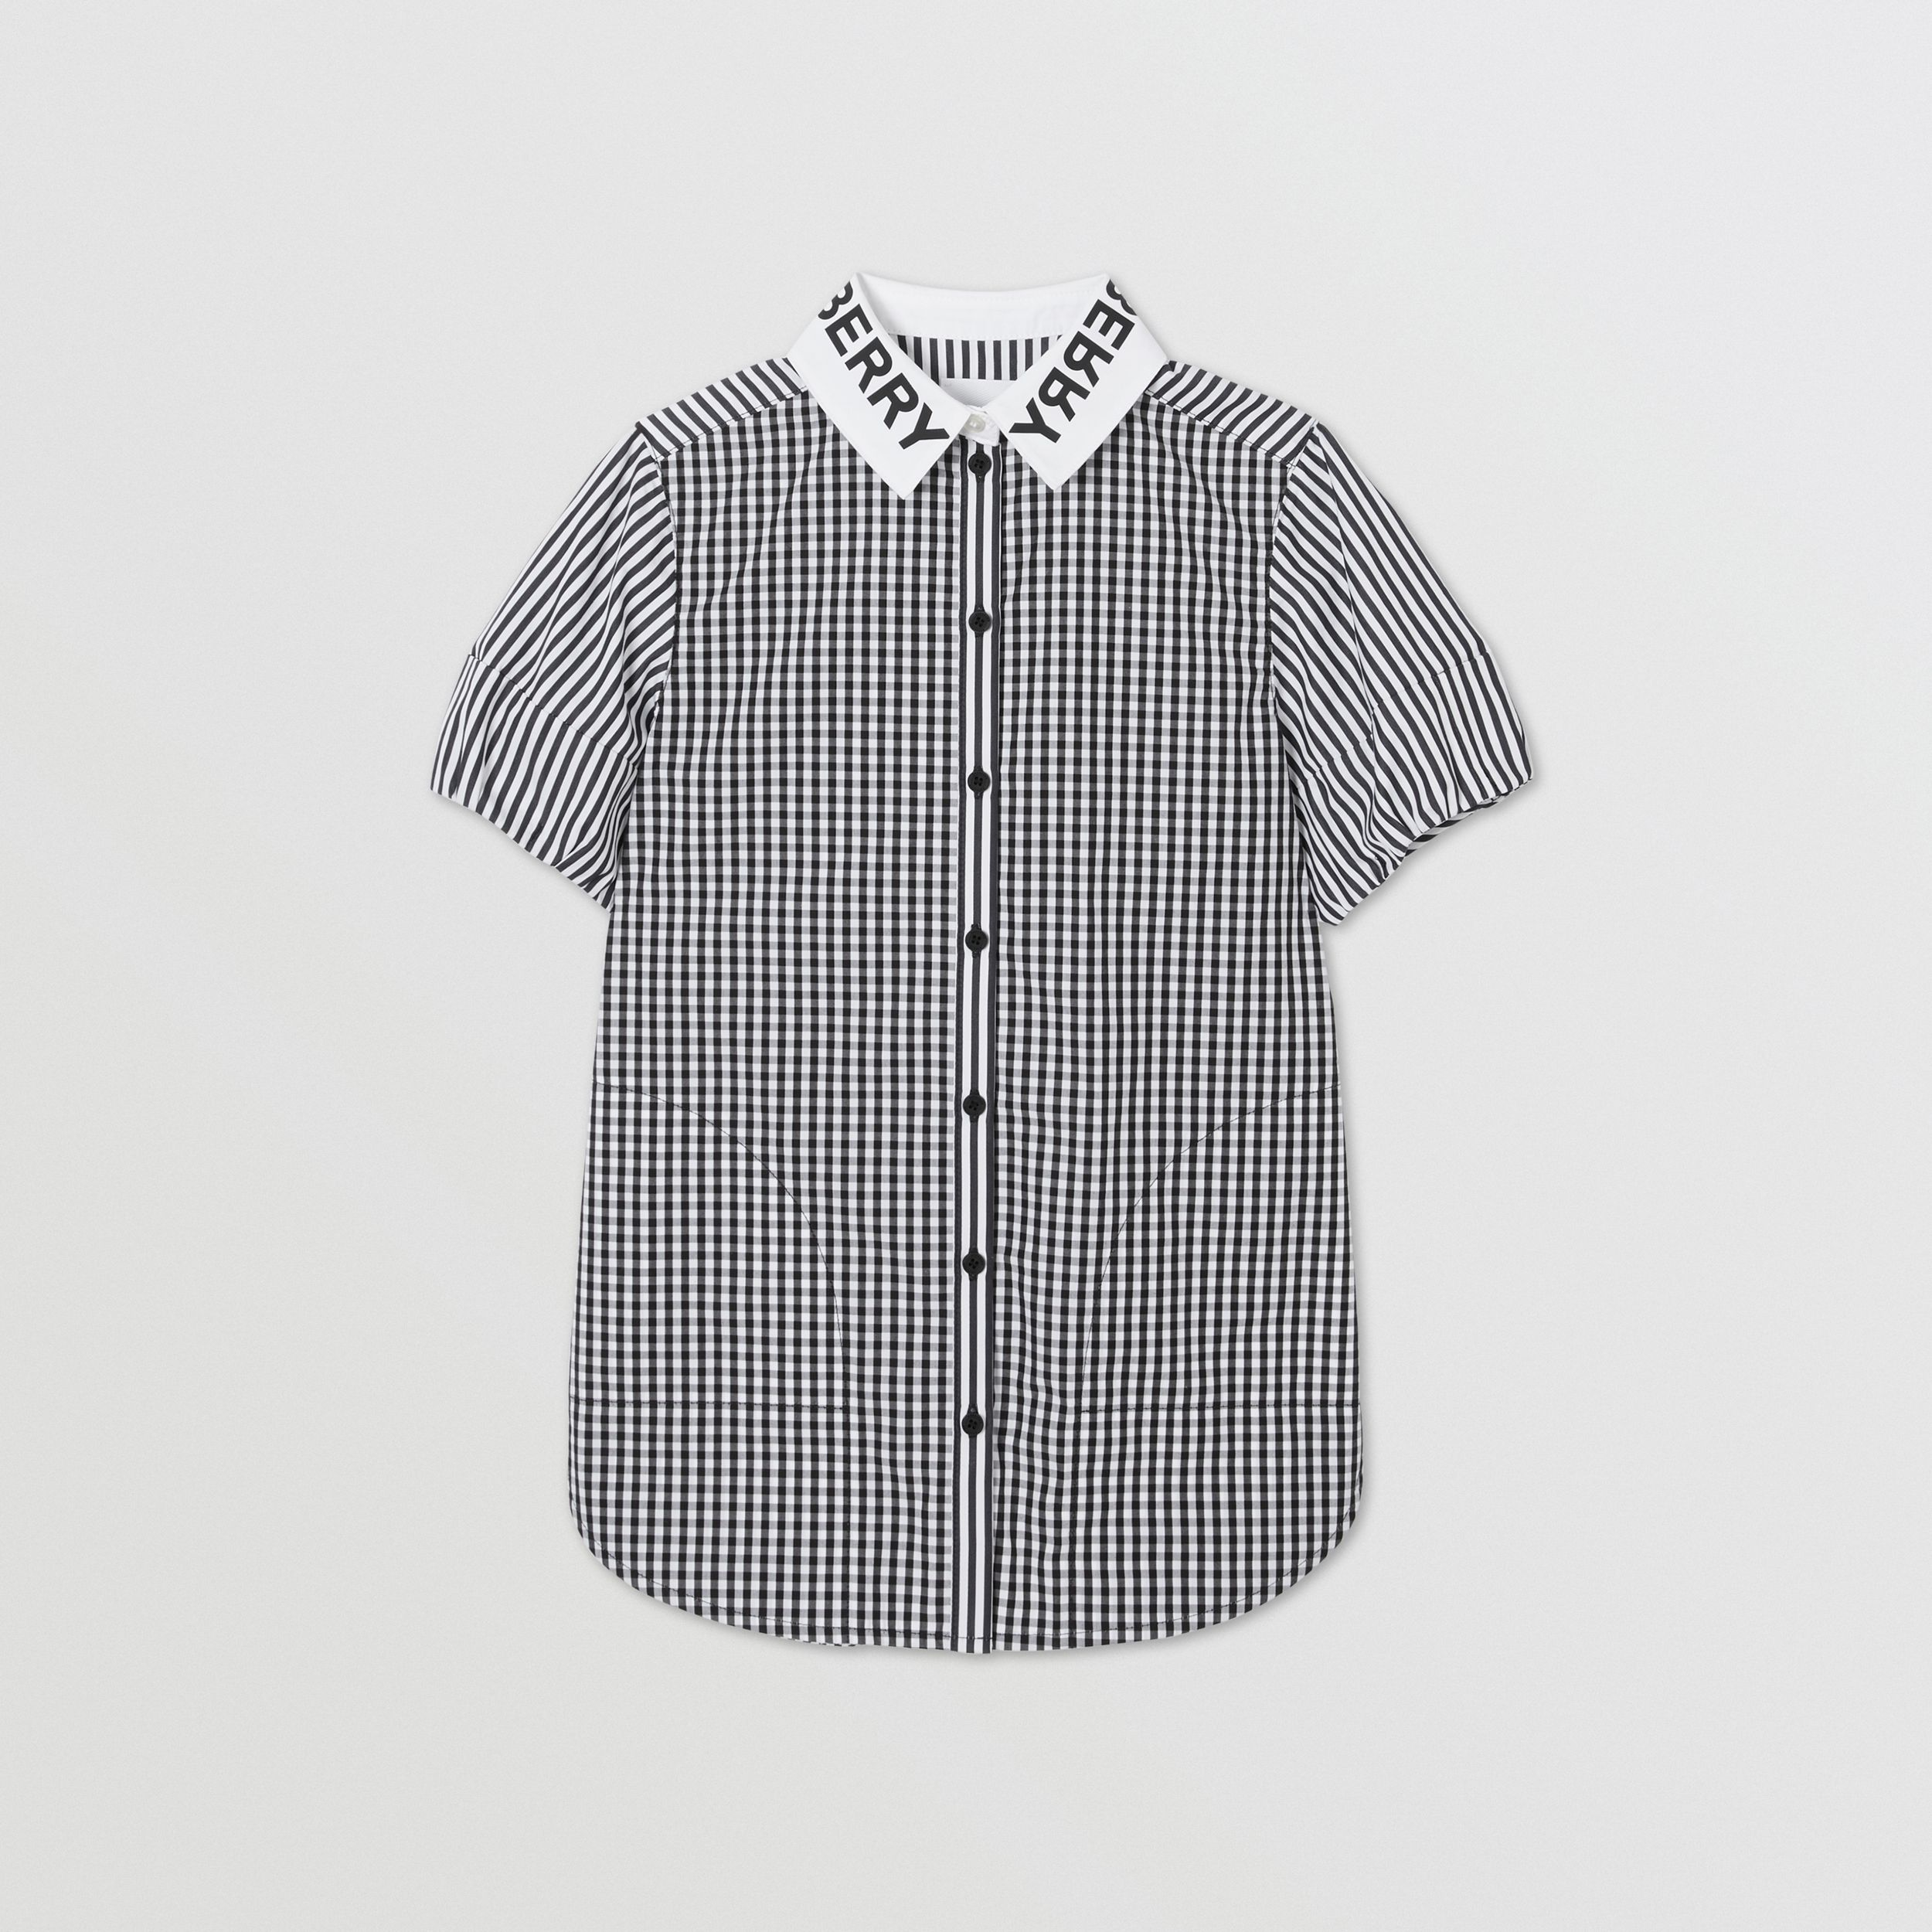 Logo Print Striped and Gingham Cotton Shirt Dress in Black | Burberry - 1